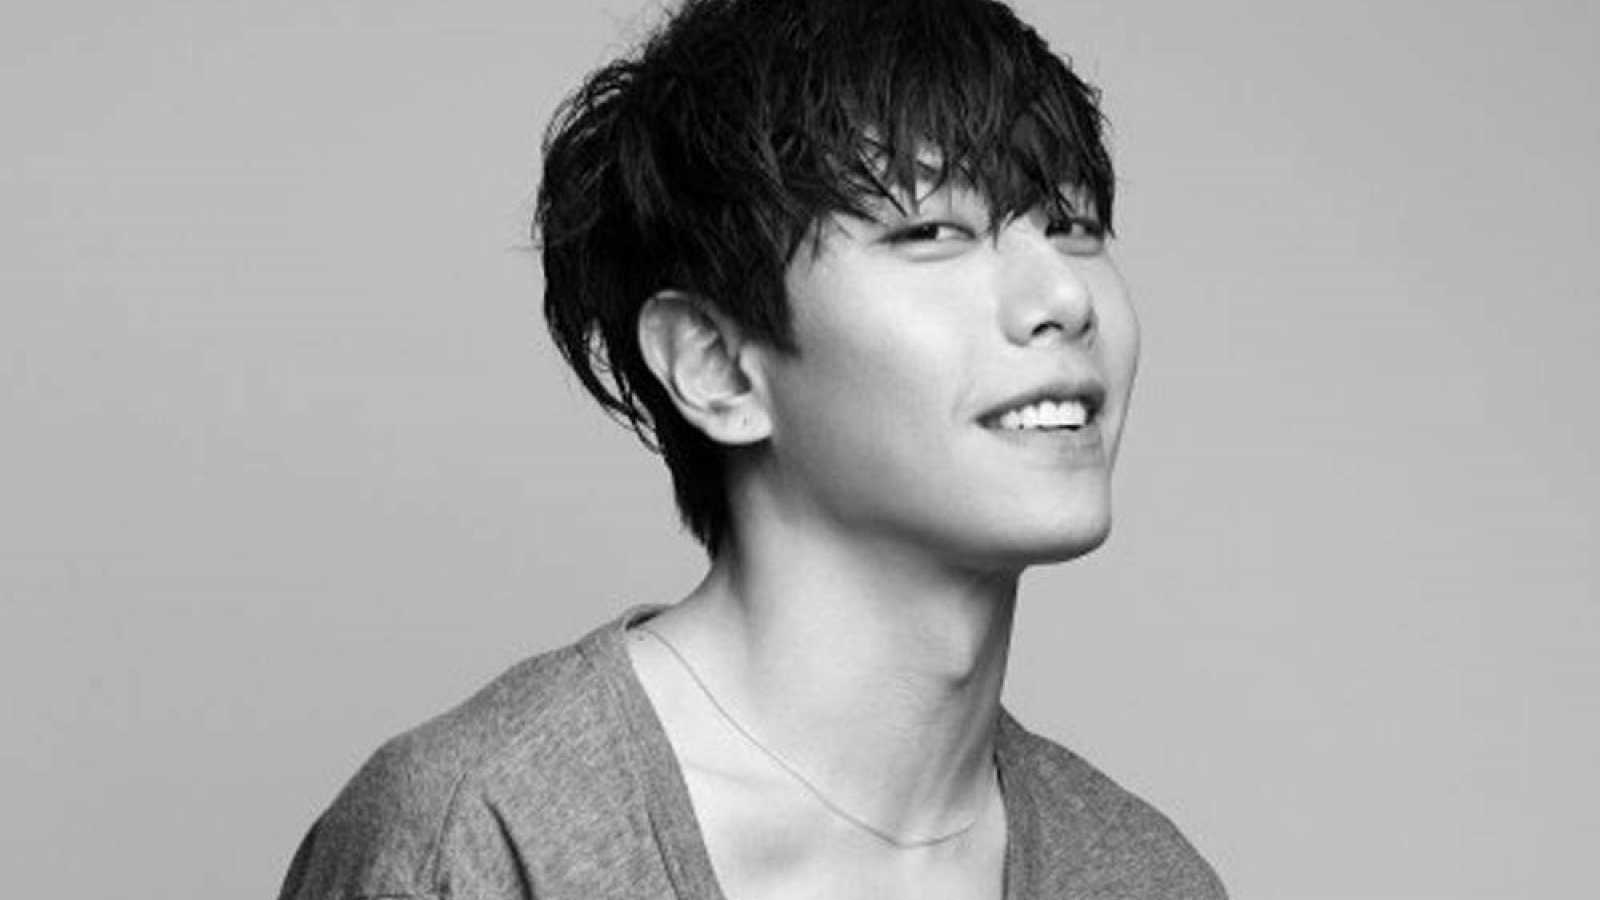 Shine Your Light, novo single de Park Hyo Shin © Jellyfish Entertainment